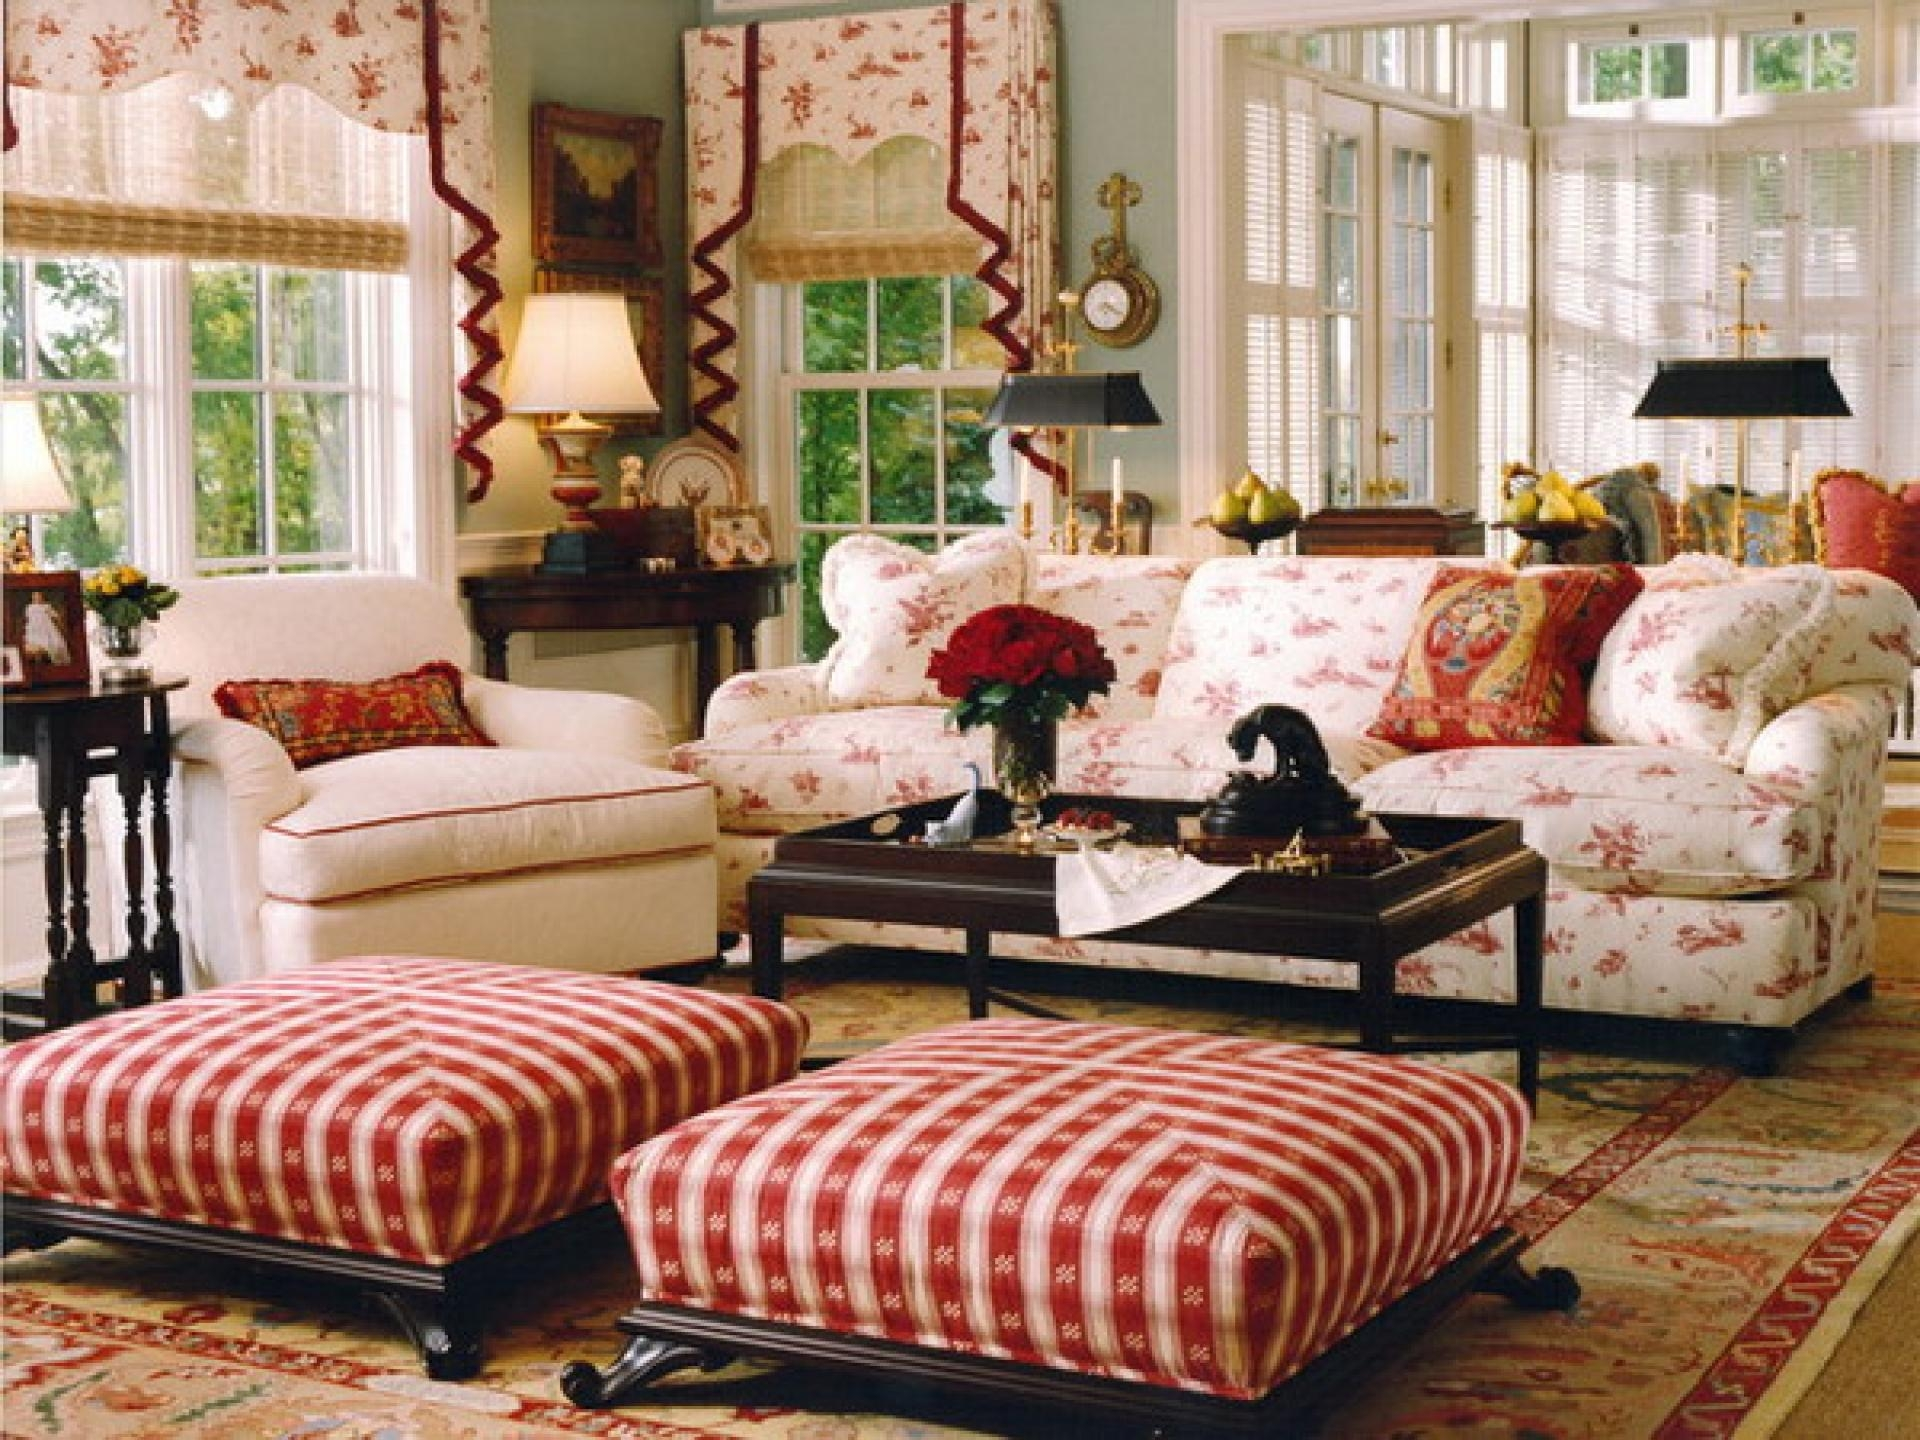 Best Modest Floral Sofas And Chairs #1658 Inside Floral Sofas And Chairs (Image 1 of 20)